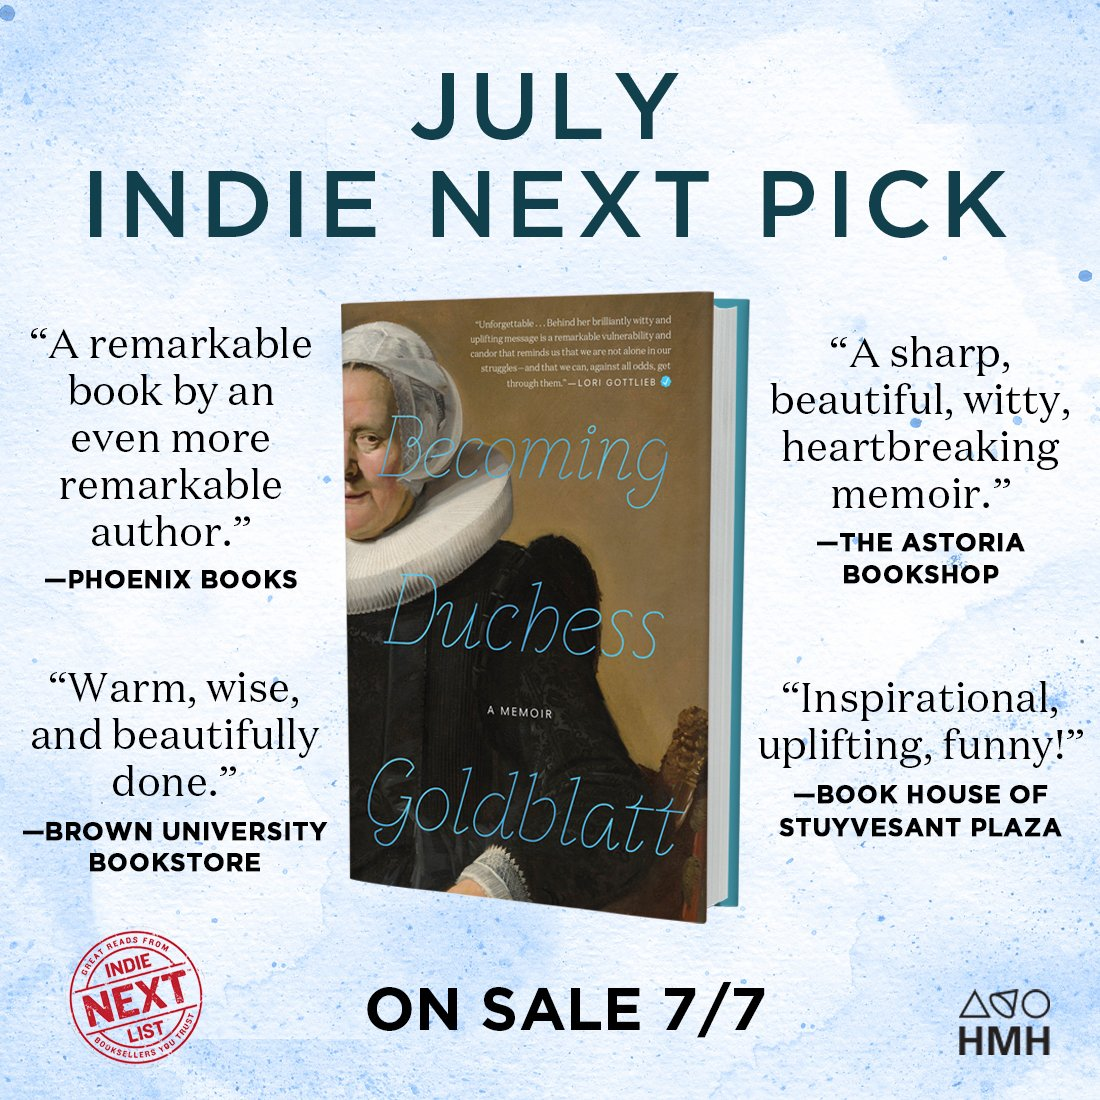 BECOMING DUCHESS GOLDBLATT is an Indie Next Pick for July!! Booksellers are raving—and we know you'll love it too! Tuesday cannot come soon enough, are we right or are we right? 😊❤️ @duchessgoldblat